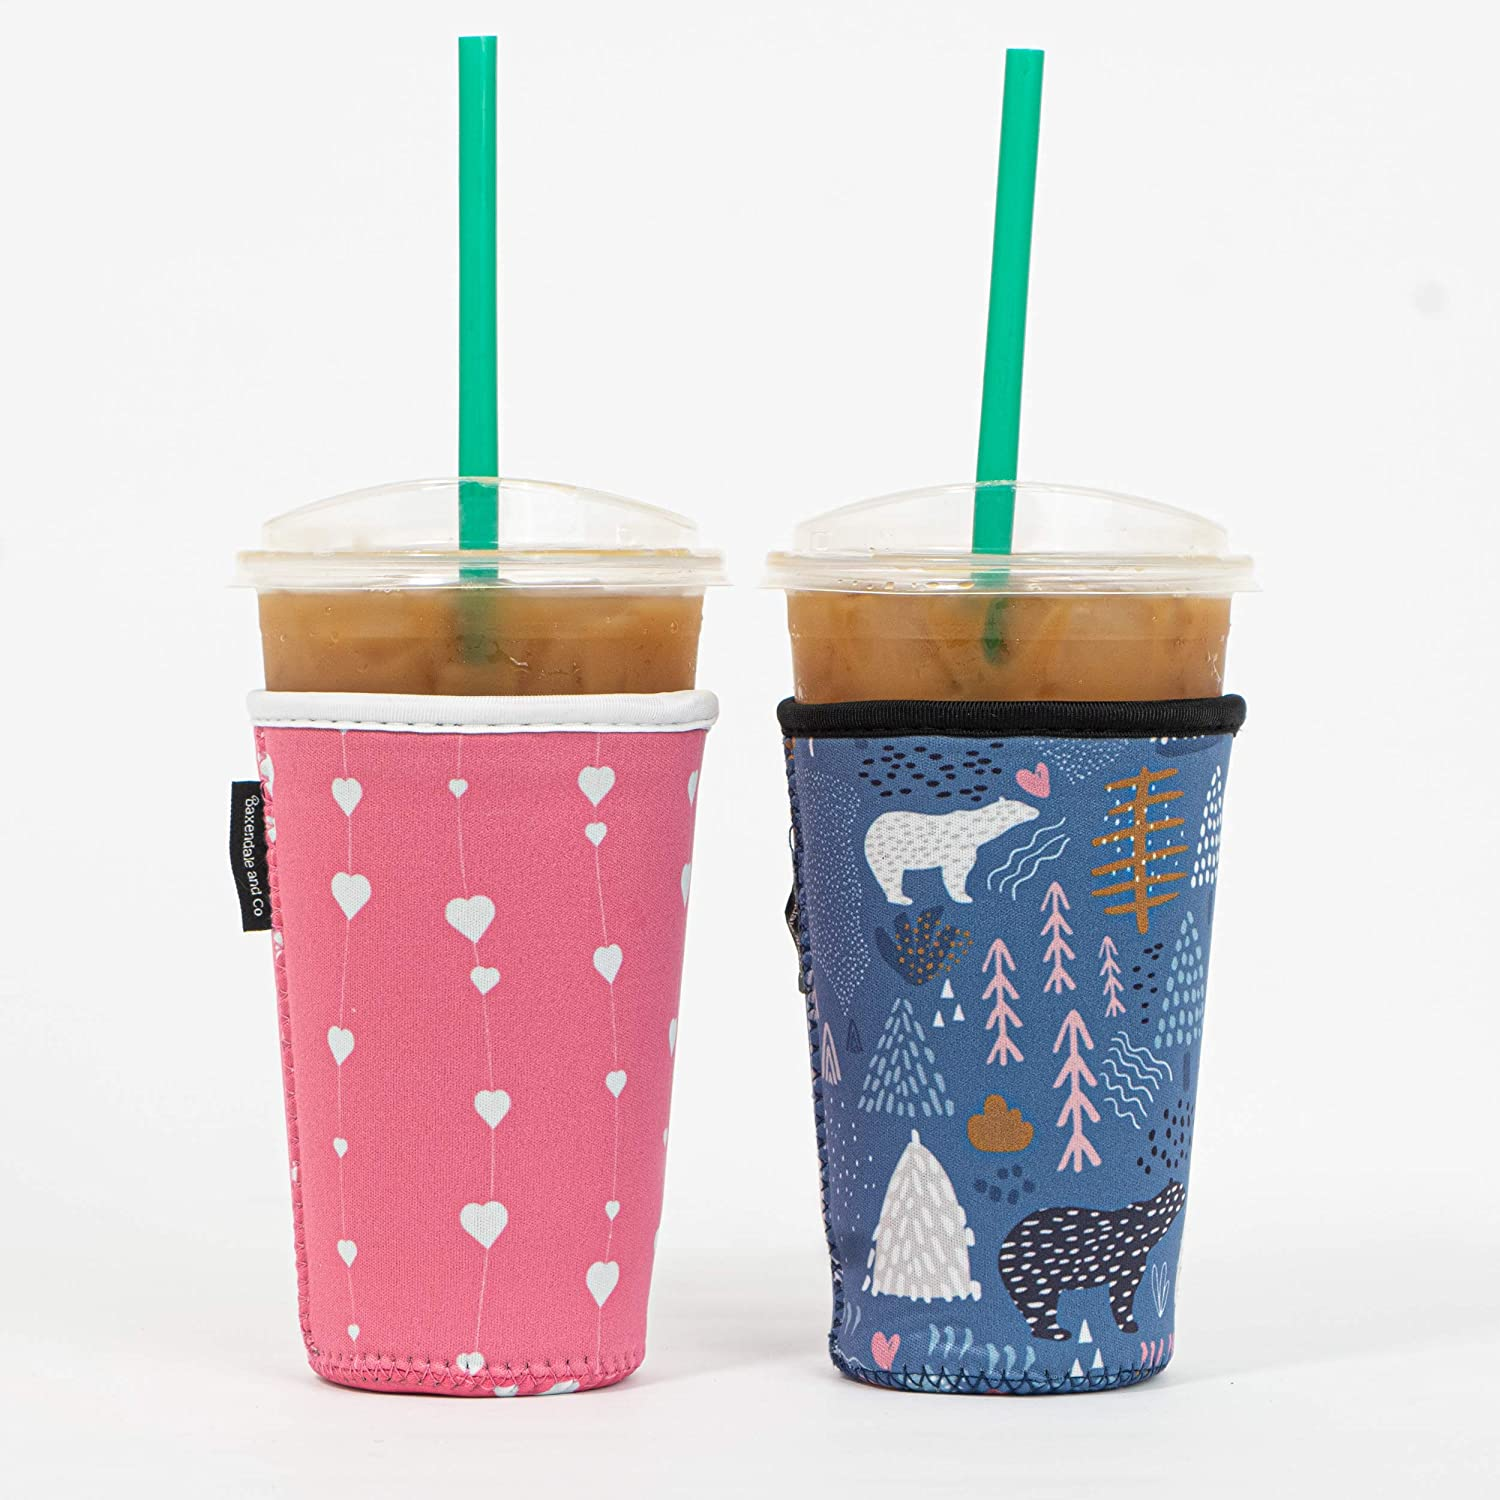 Reusable Insulated Neoprene Iced Coffee Beverage Sleeve | Cold Drink Cup Holder for Starbucks Coffee, McDonalds, Dunkin Donuts, Tim Hortons and More (2 PK Medium 22-24oz, Bear & Hearts)